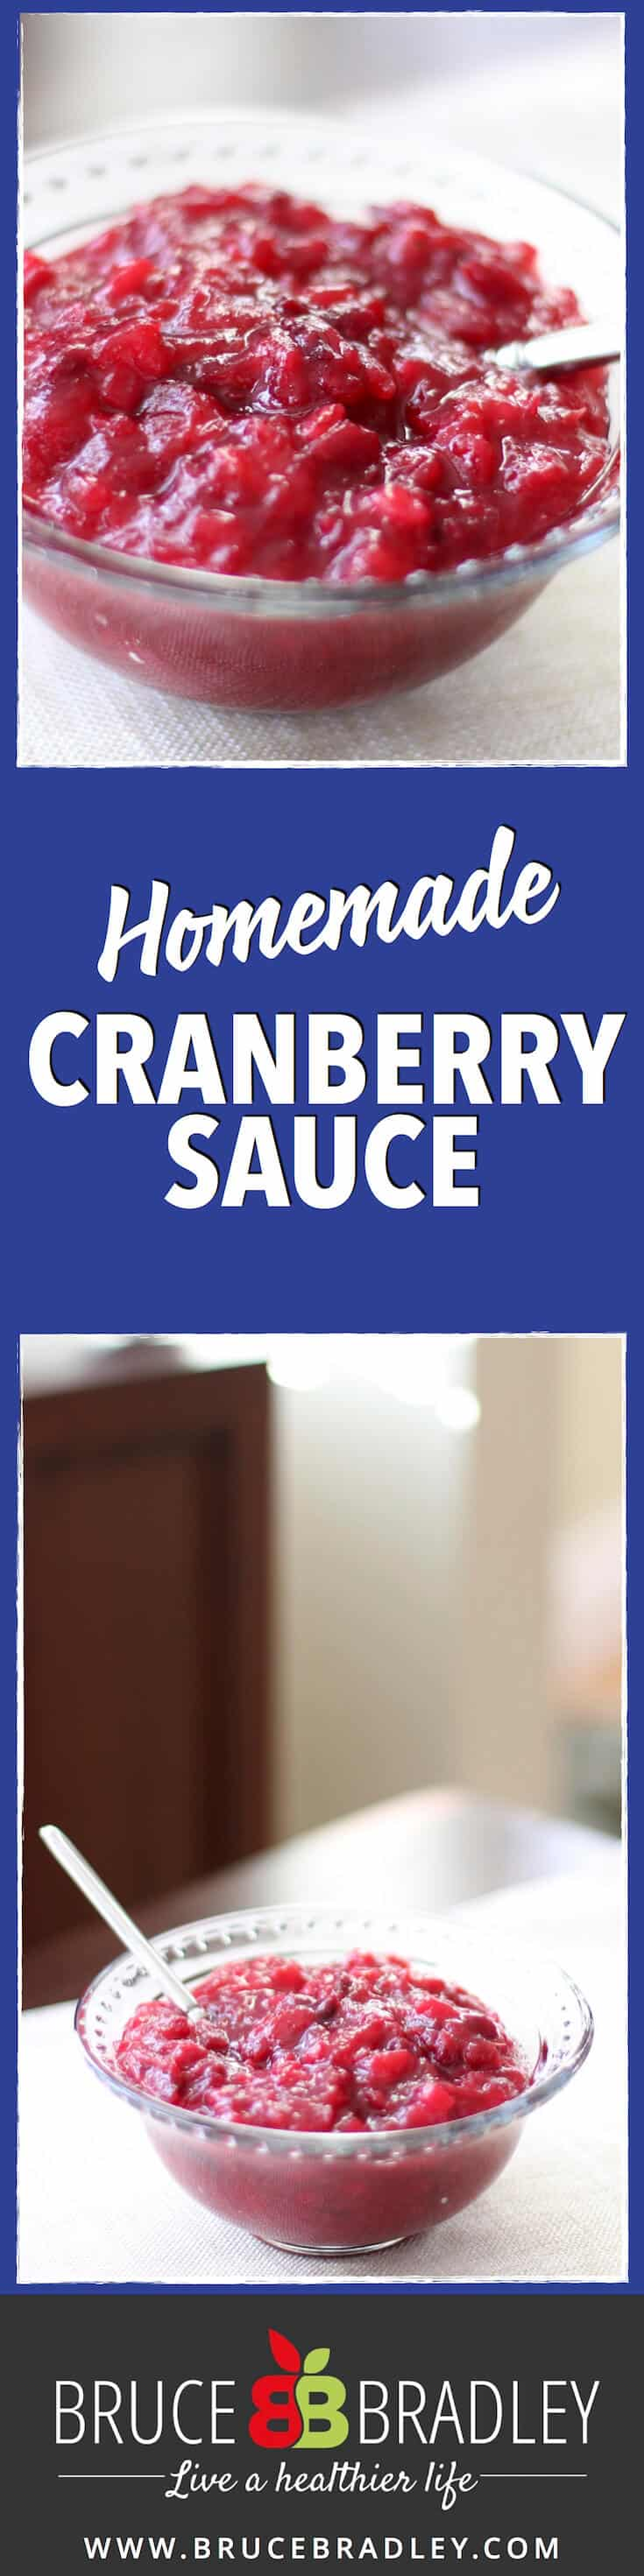 Ditch the canned cranberry sauce that's filled with sugars, high fructose corn syrup, and potentially packed in BPA lined cans. You can do better! Make your own!